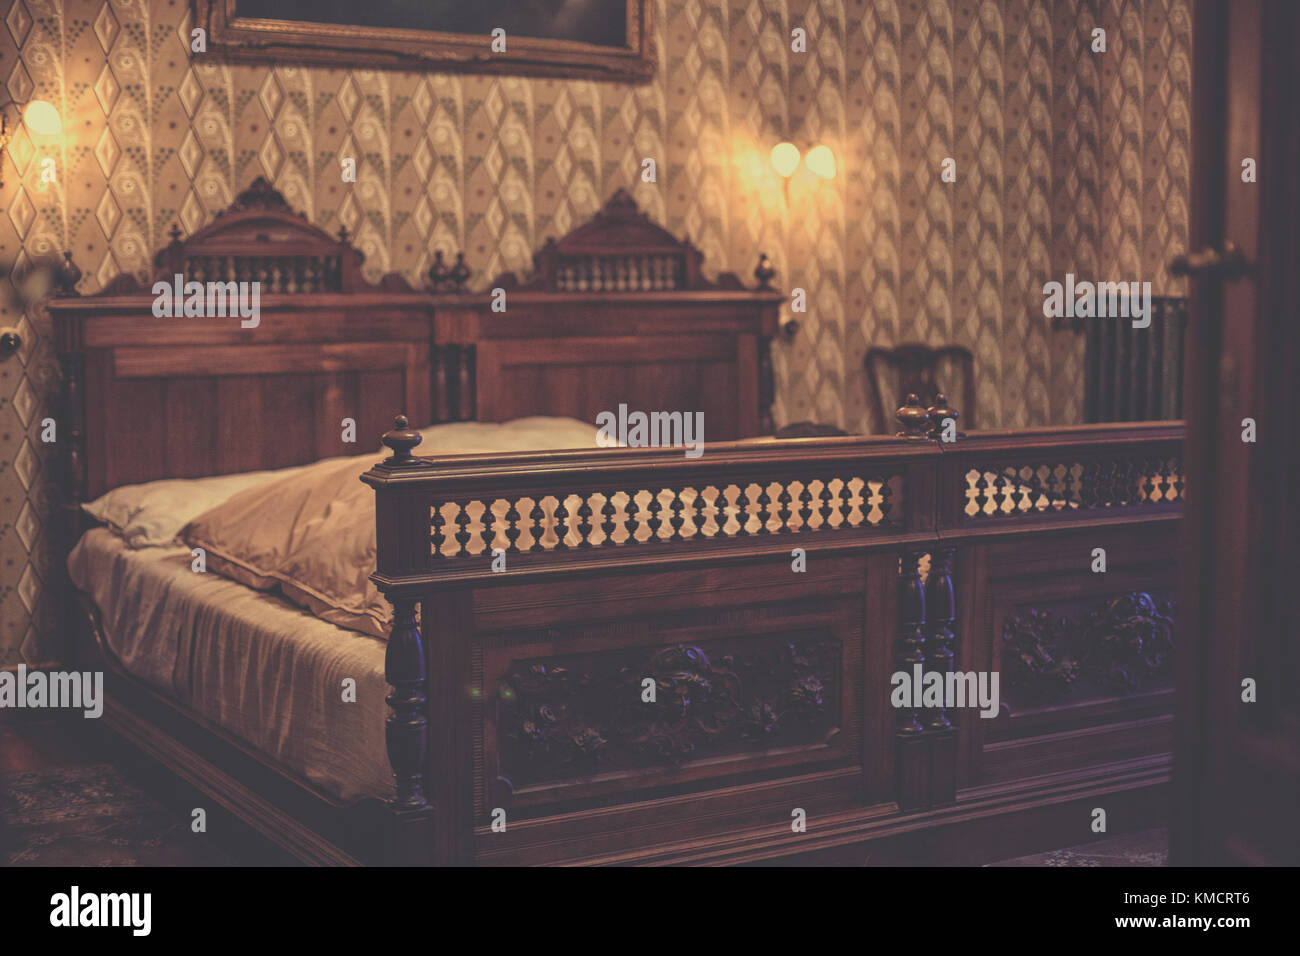 Vintage Wooden Double Bed In Old Bedroom Stock Photo Alamy